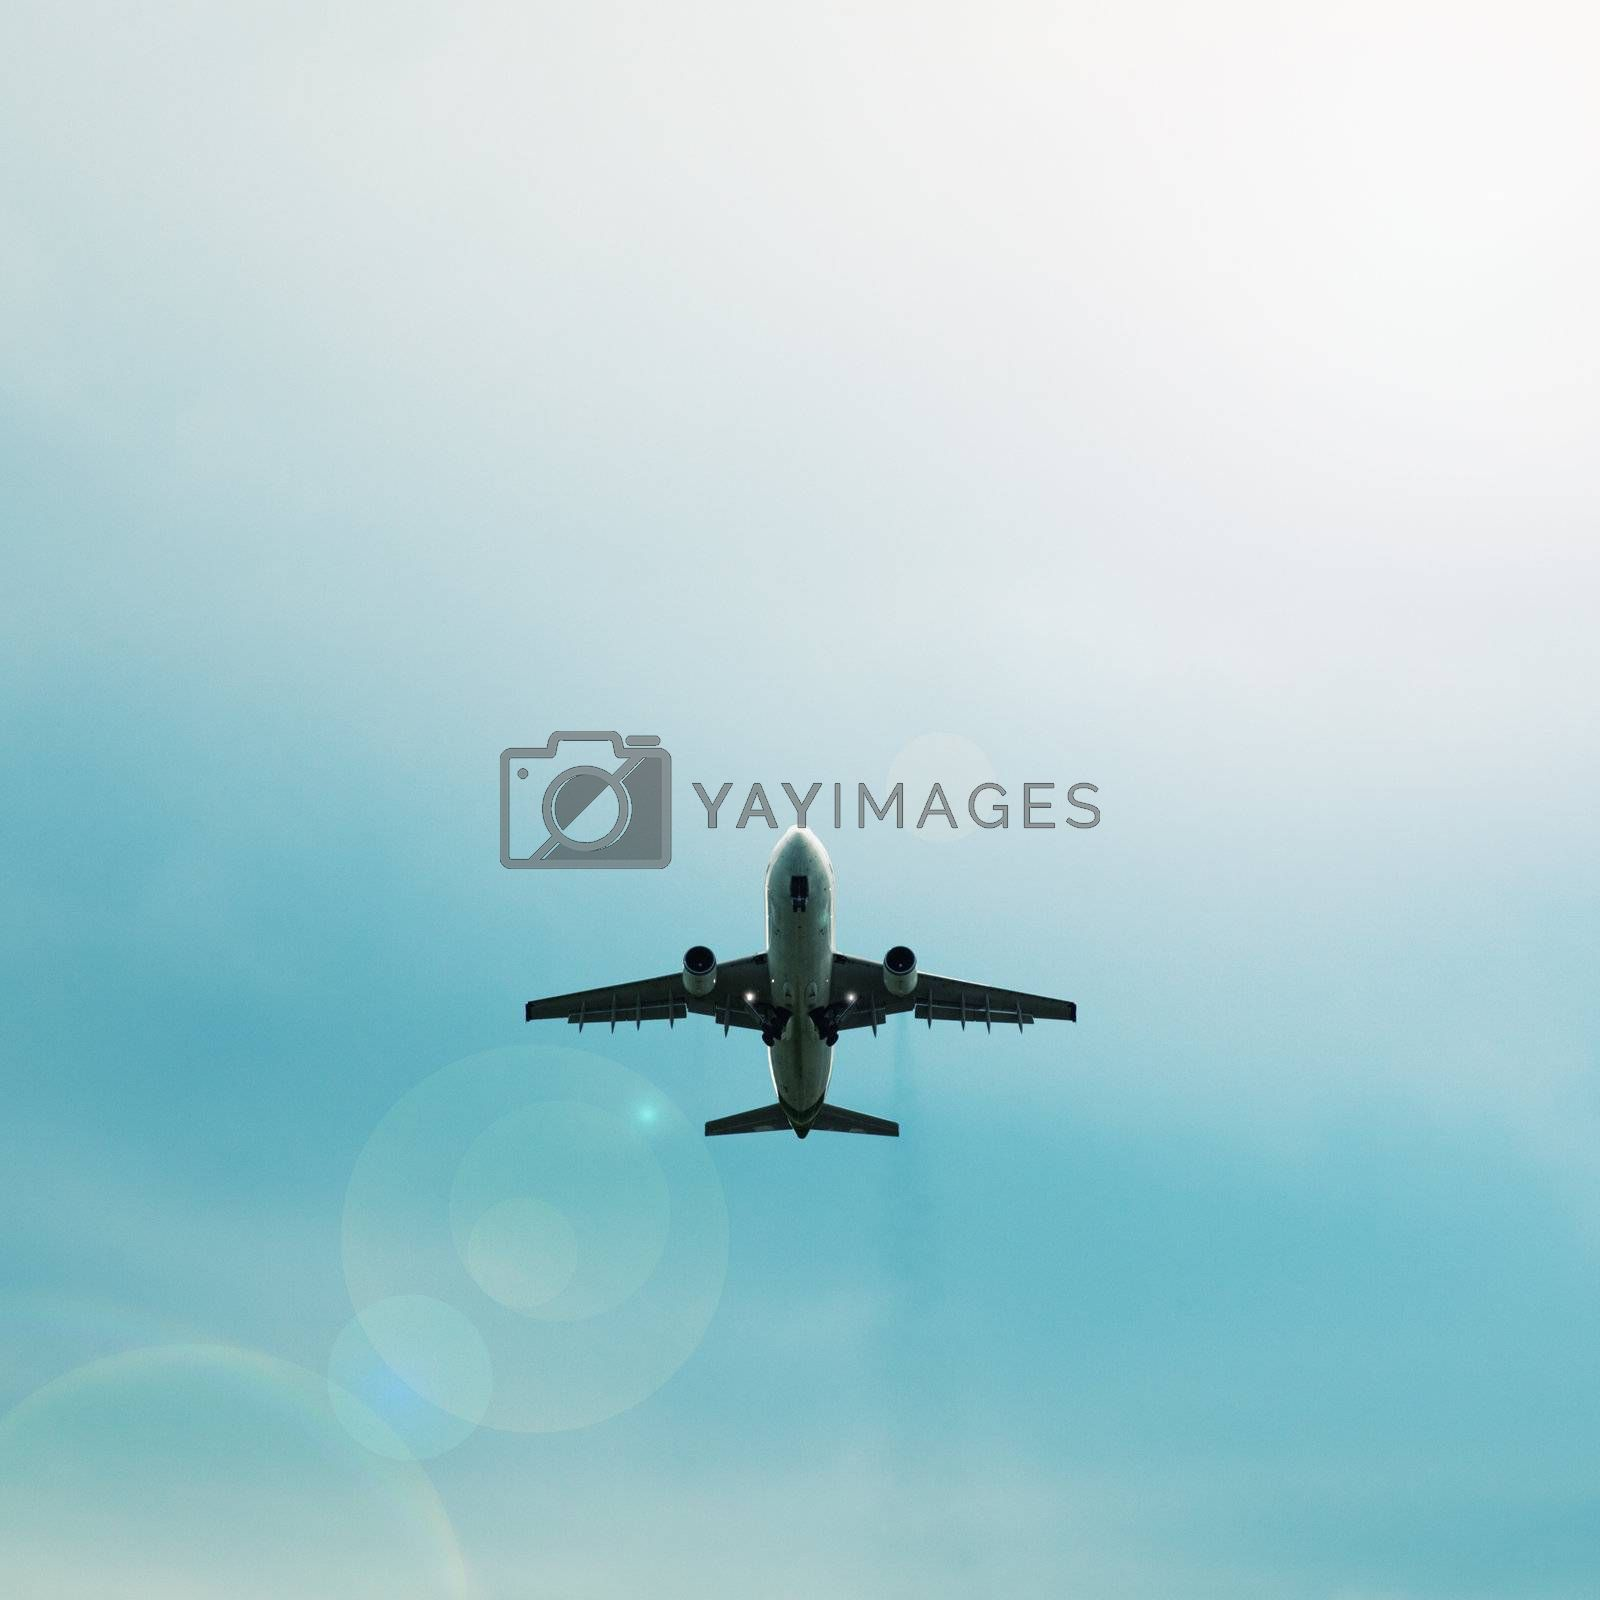 A passenger airplane flying in the blue sky - silhouette